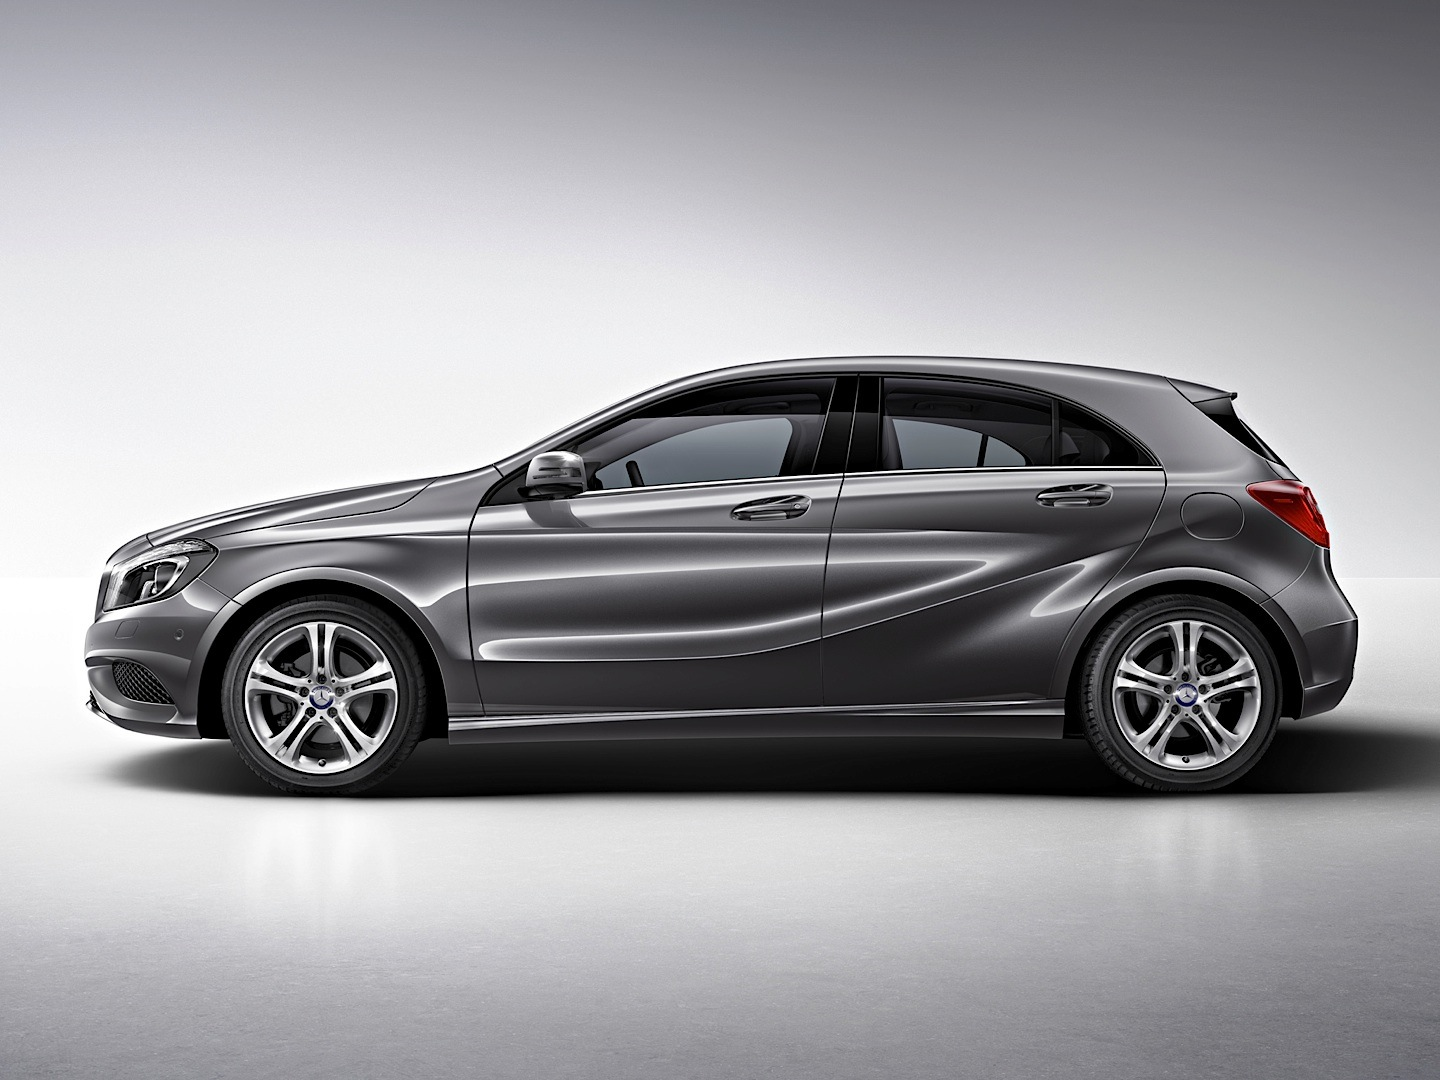 Mercedes Benz A Class Reviewed By Hot Anastasia Tregubova